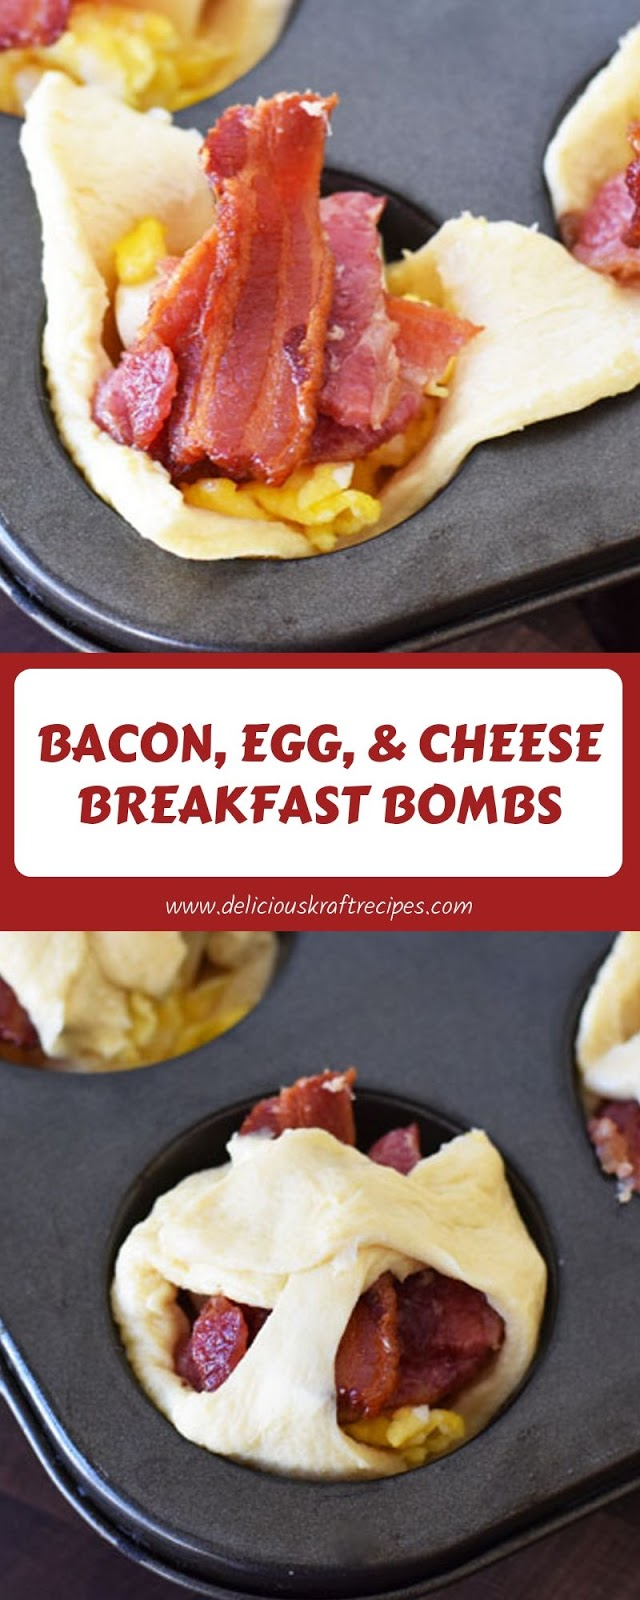 BACON, EGG, & CHEESE BREAKFAST BOMBS